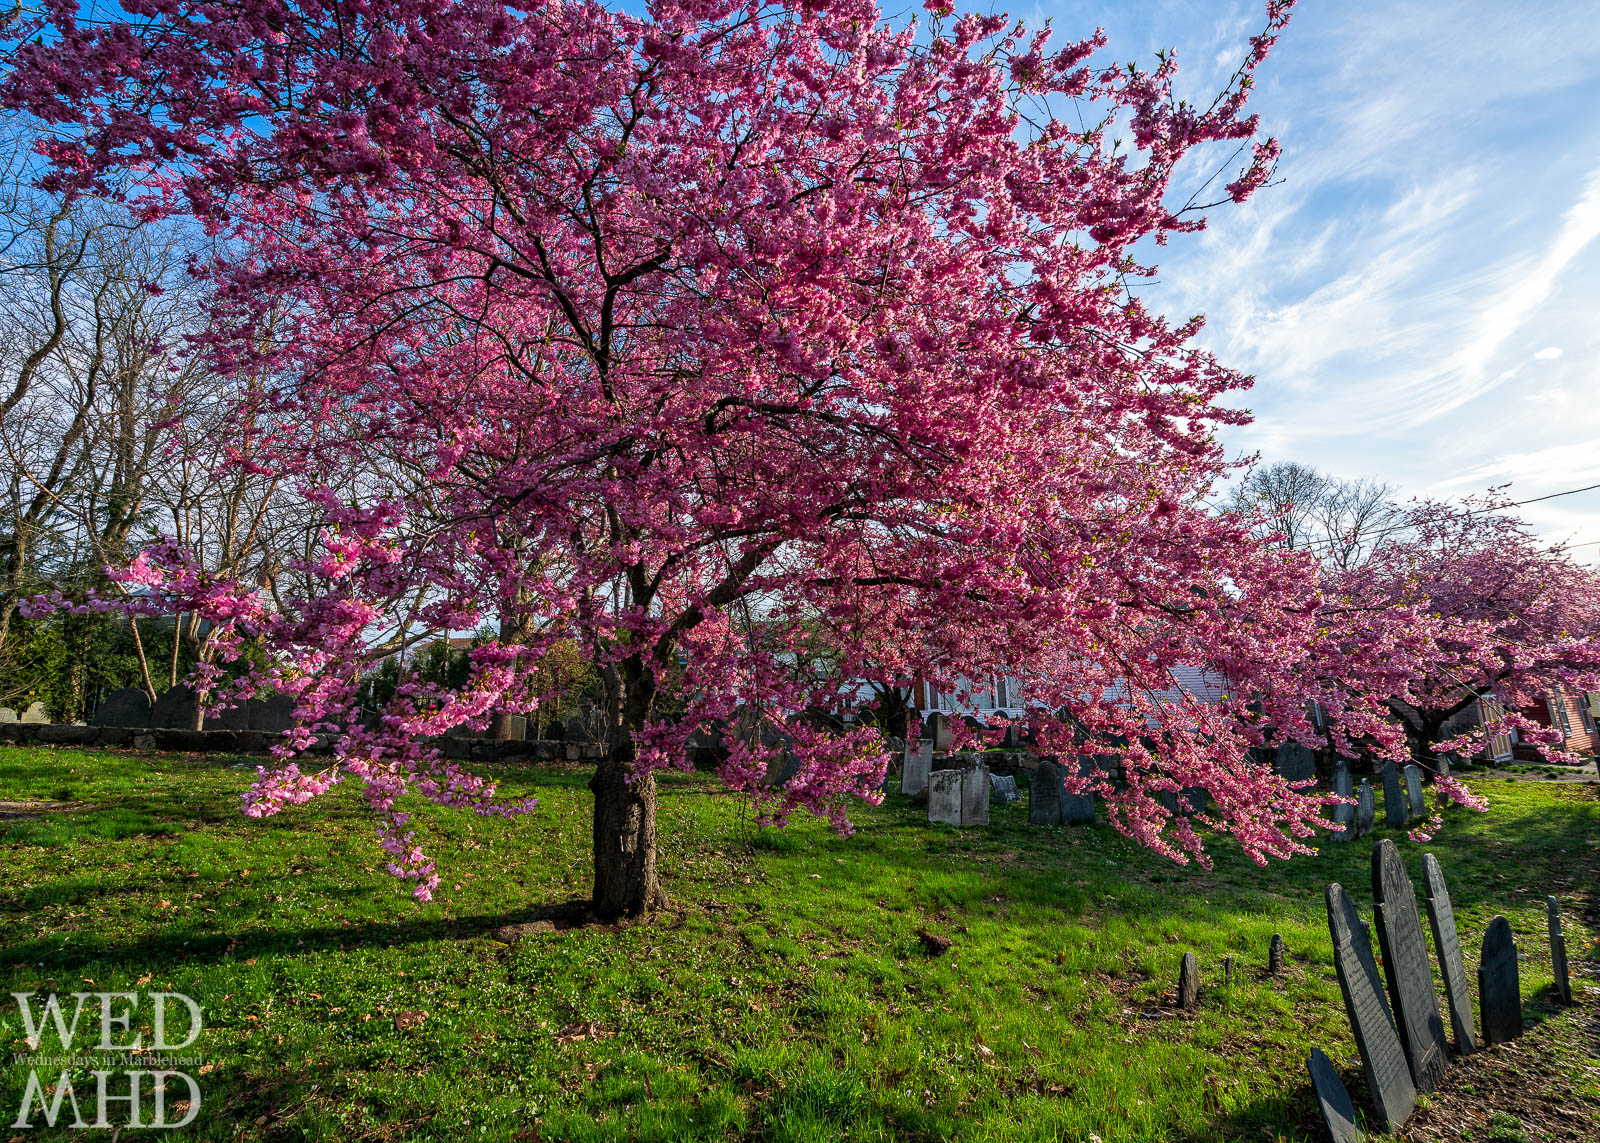 Spring arrives and with it the cherry blossoms of Harris Street cemetery in Marblehead